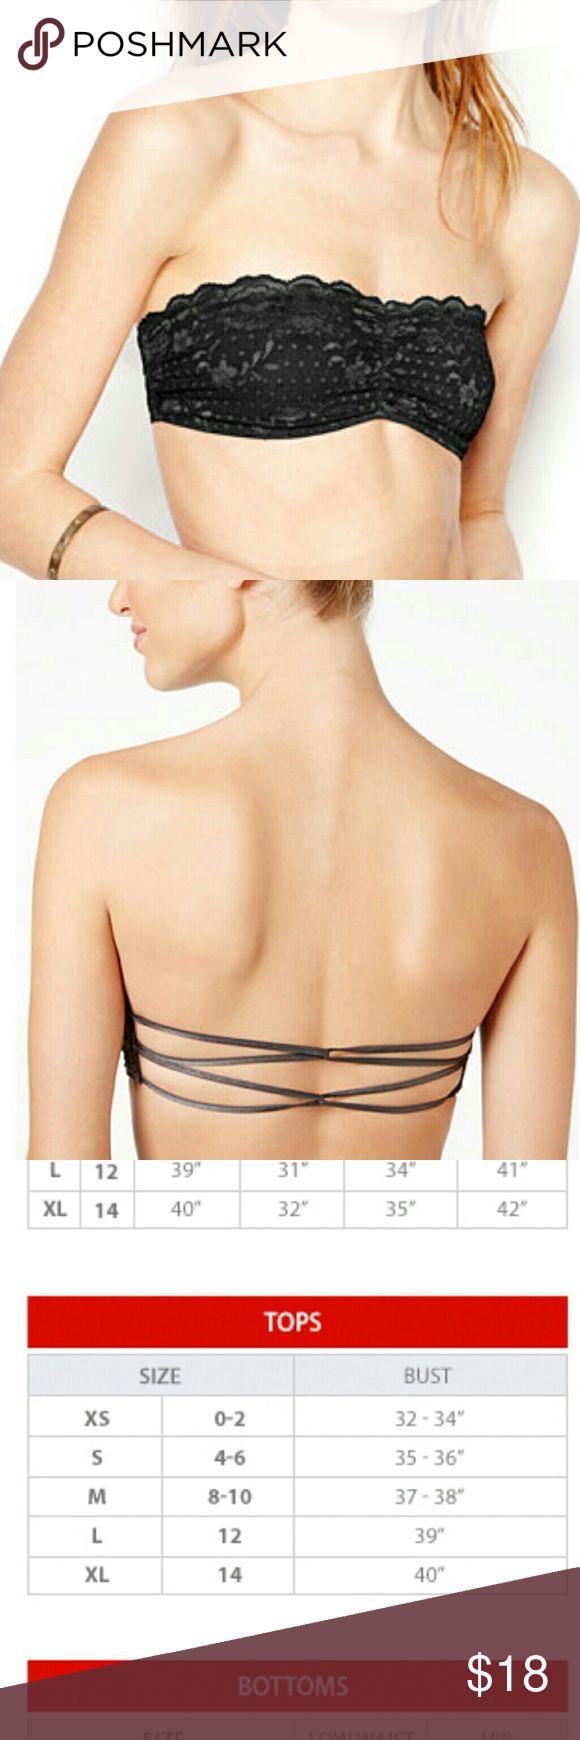 Free People Lace Essential Bandeau Free People Lace Essential Bandeau  Sexy Bandeau top with looped back straps  Perfect for layering in any season  88% Nylon 12% Spandex Strapless sweetheart neckline  See through lace front and sizes Ruched at center bust Two looped elastic back straps Pull on style Color Black See size chart in photo Size: Extra Small/Tres Petite Free People Intimates & Sleepwear Bandeaus